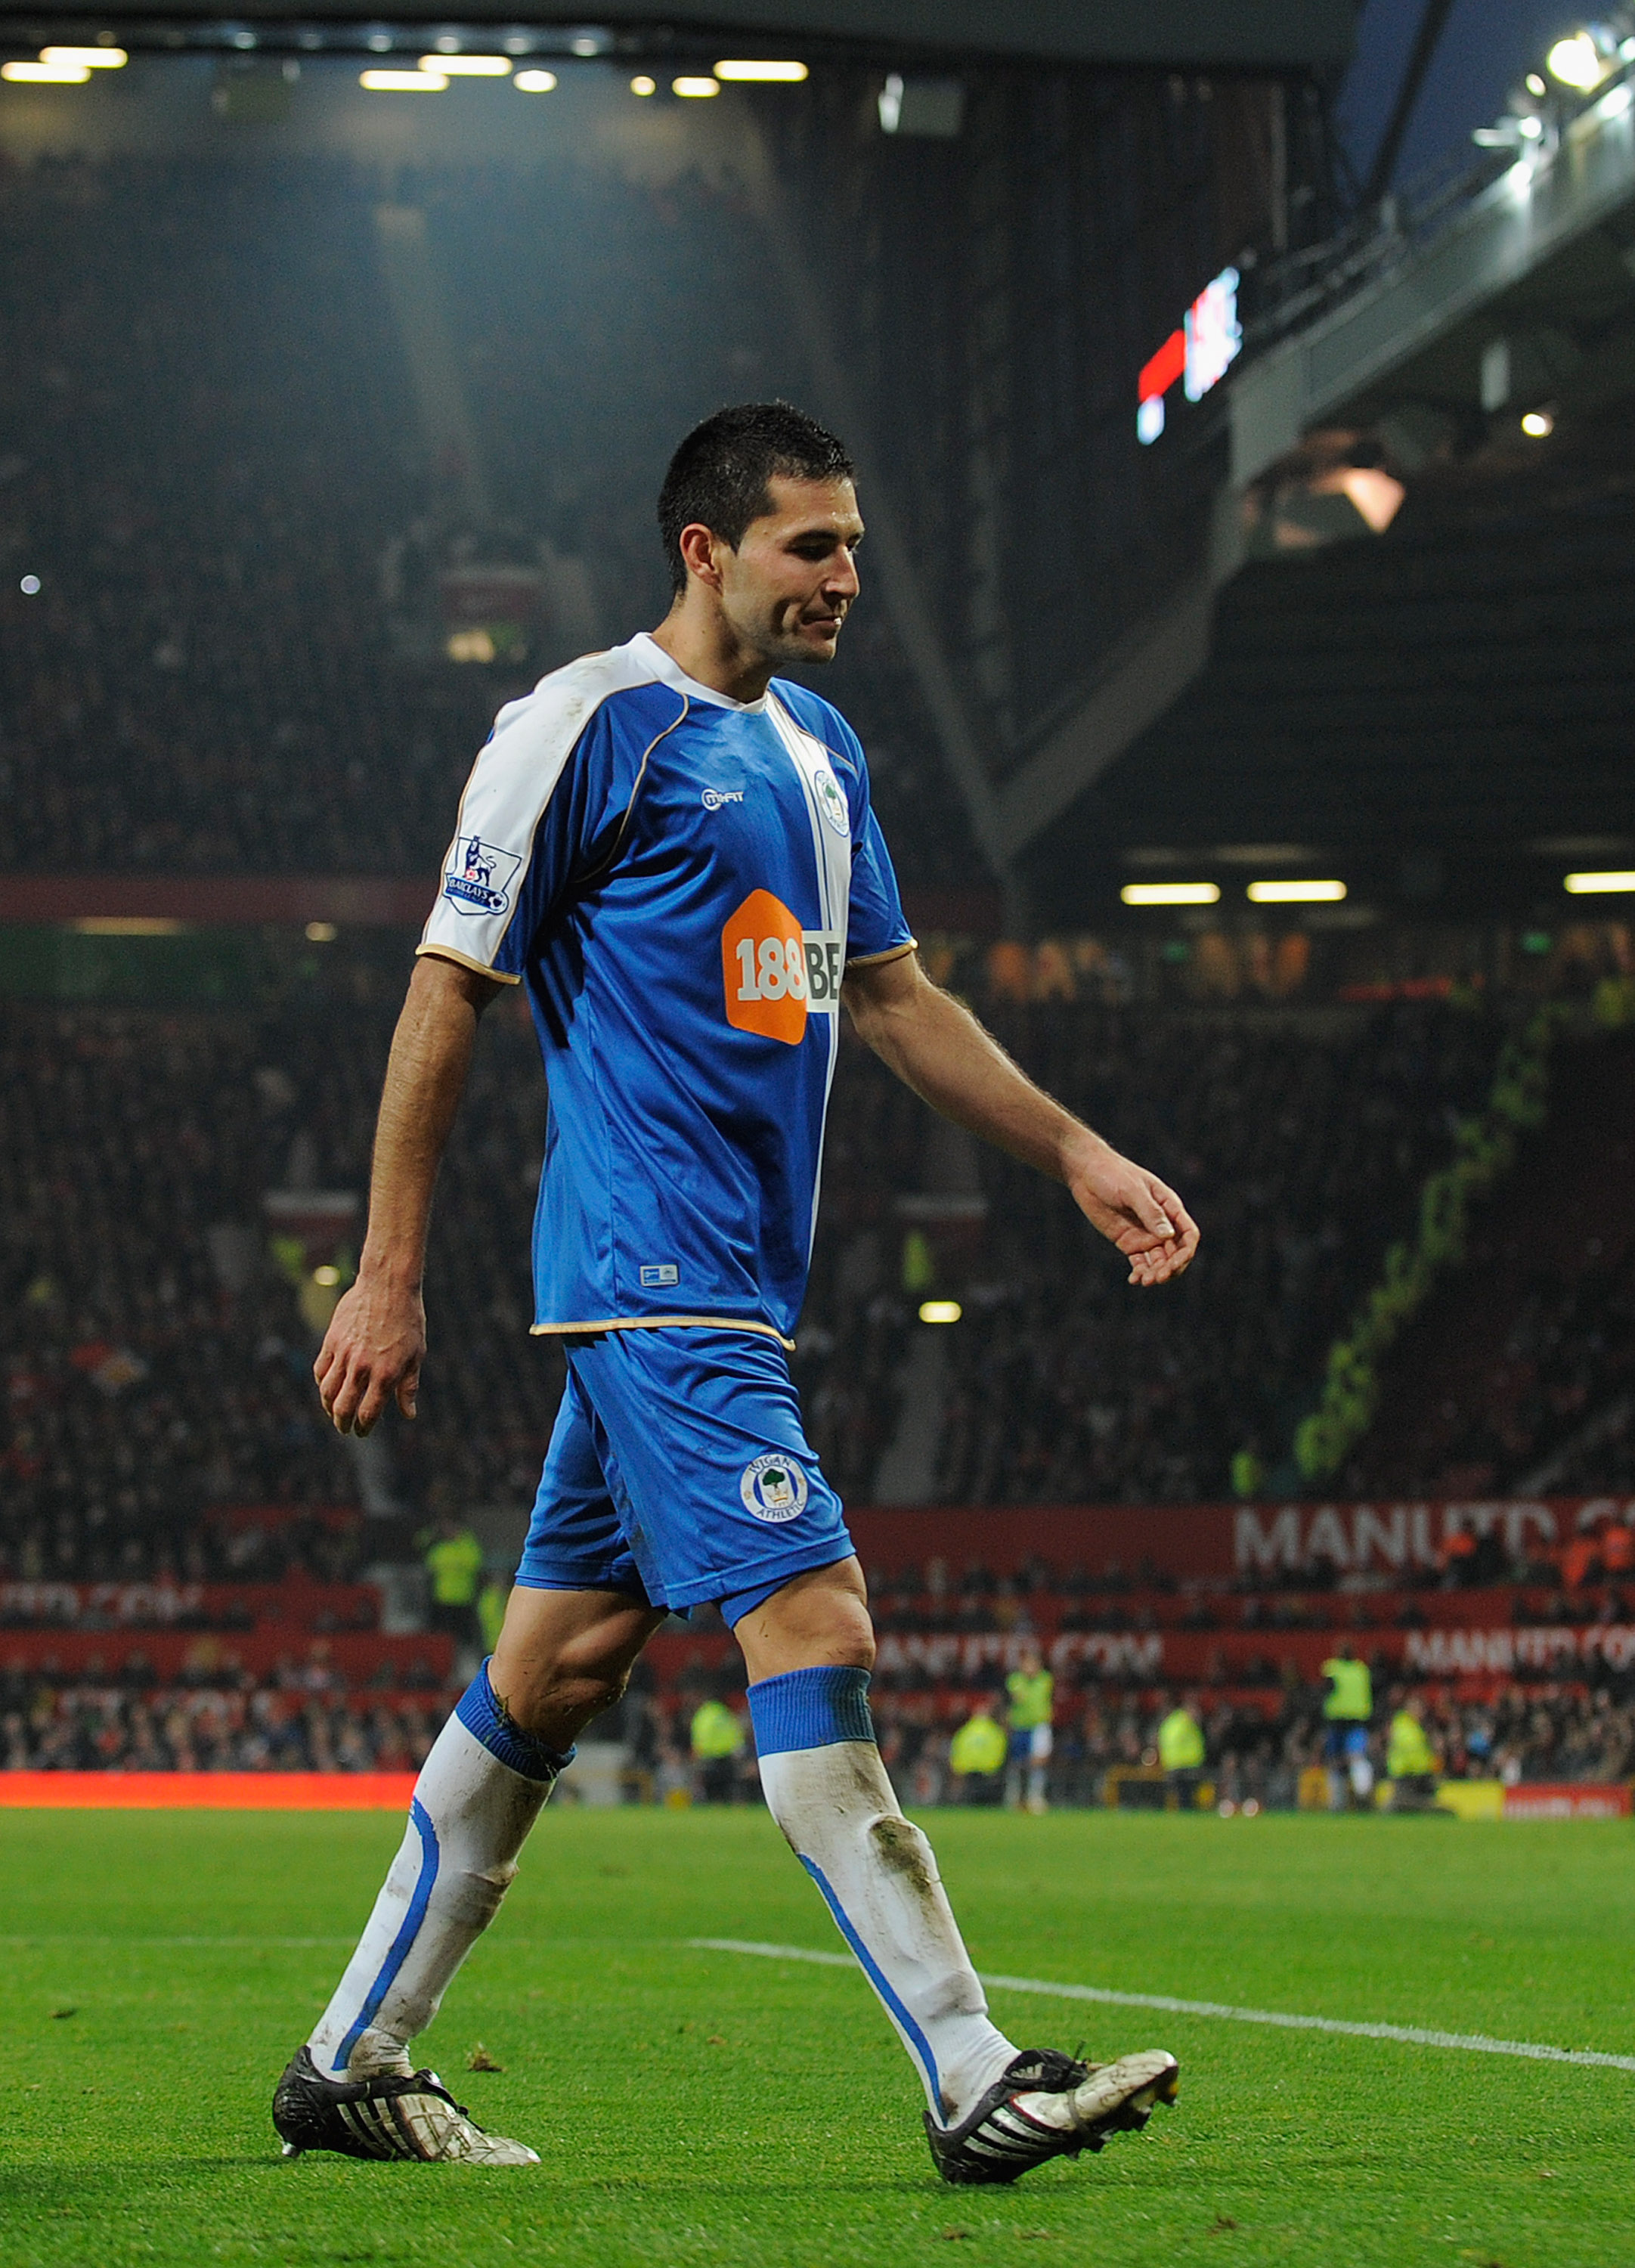 MANCHESTER, ENGLAND - NOVEMBER 20:  Antolin Alcaraz of Wigan walks of the pitch after getting a red card during the Barclays Premier League match between Manchester United and Wigan Athletic at Old Trafford on November 20, 2010 in Manchester, England.  (P